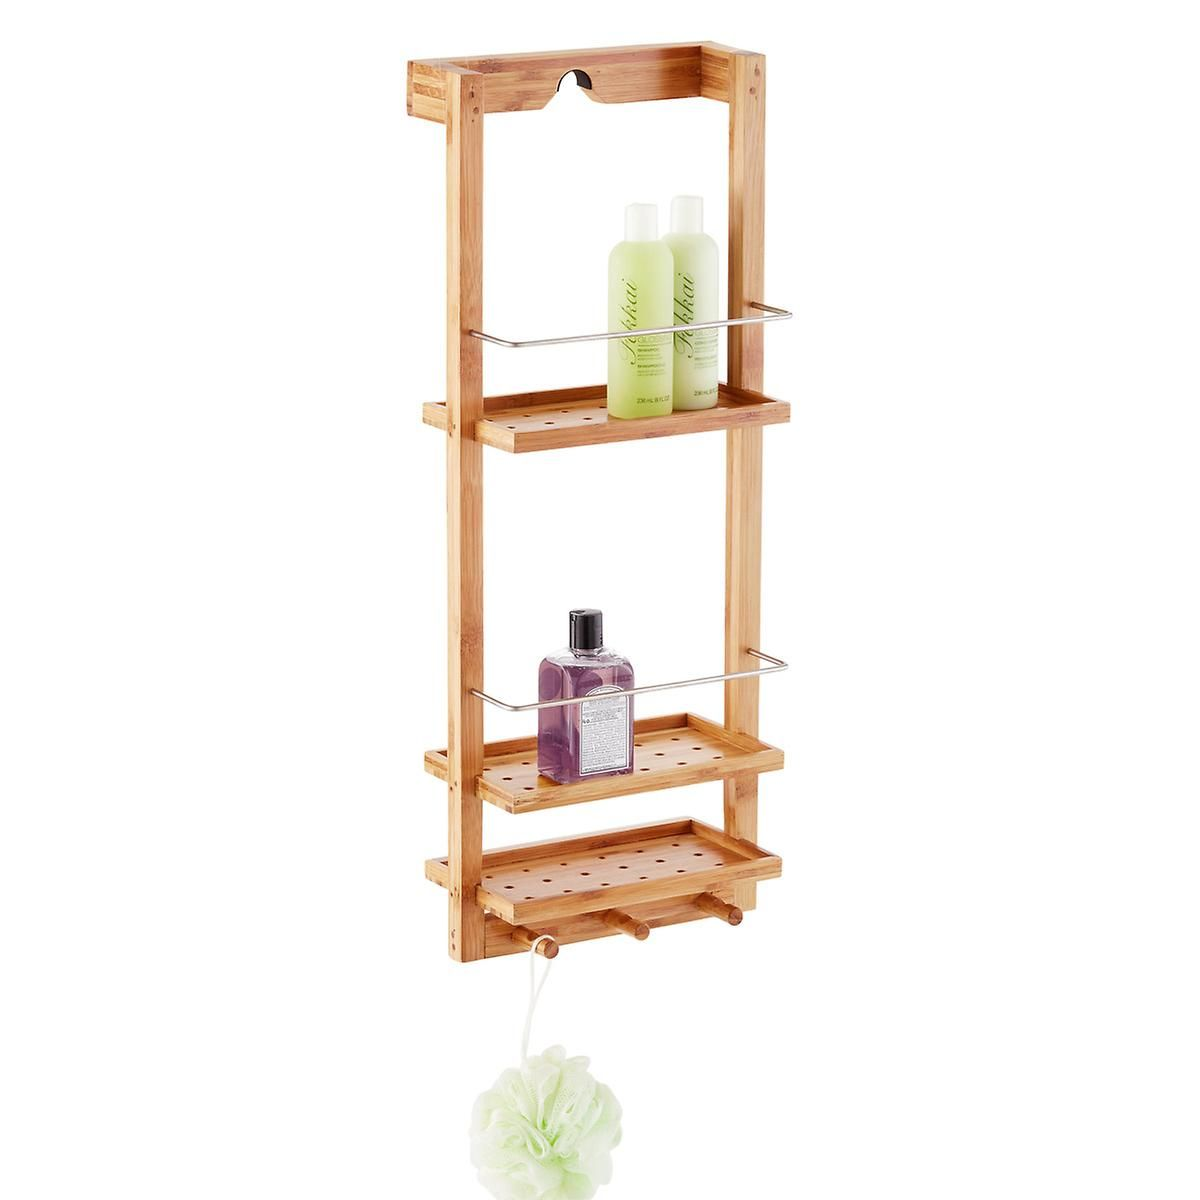 Zen 3-Tier Shower Caddy | The Container Store | Small Space Decor ...